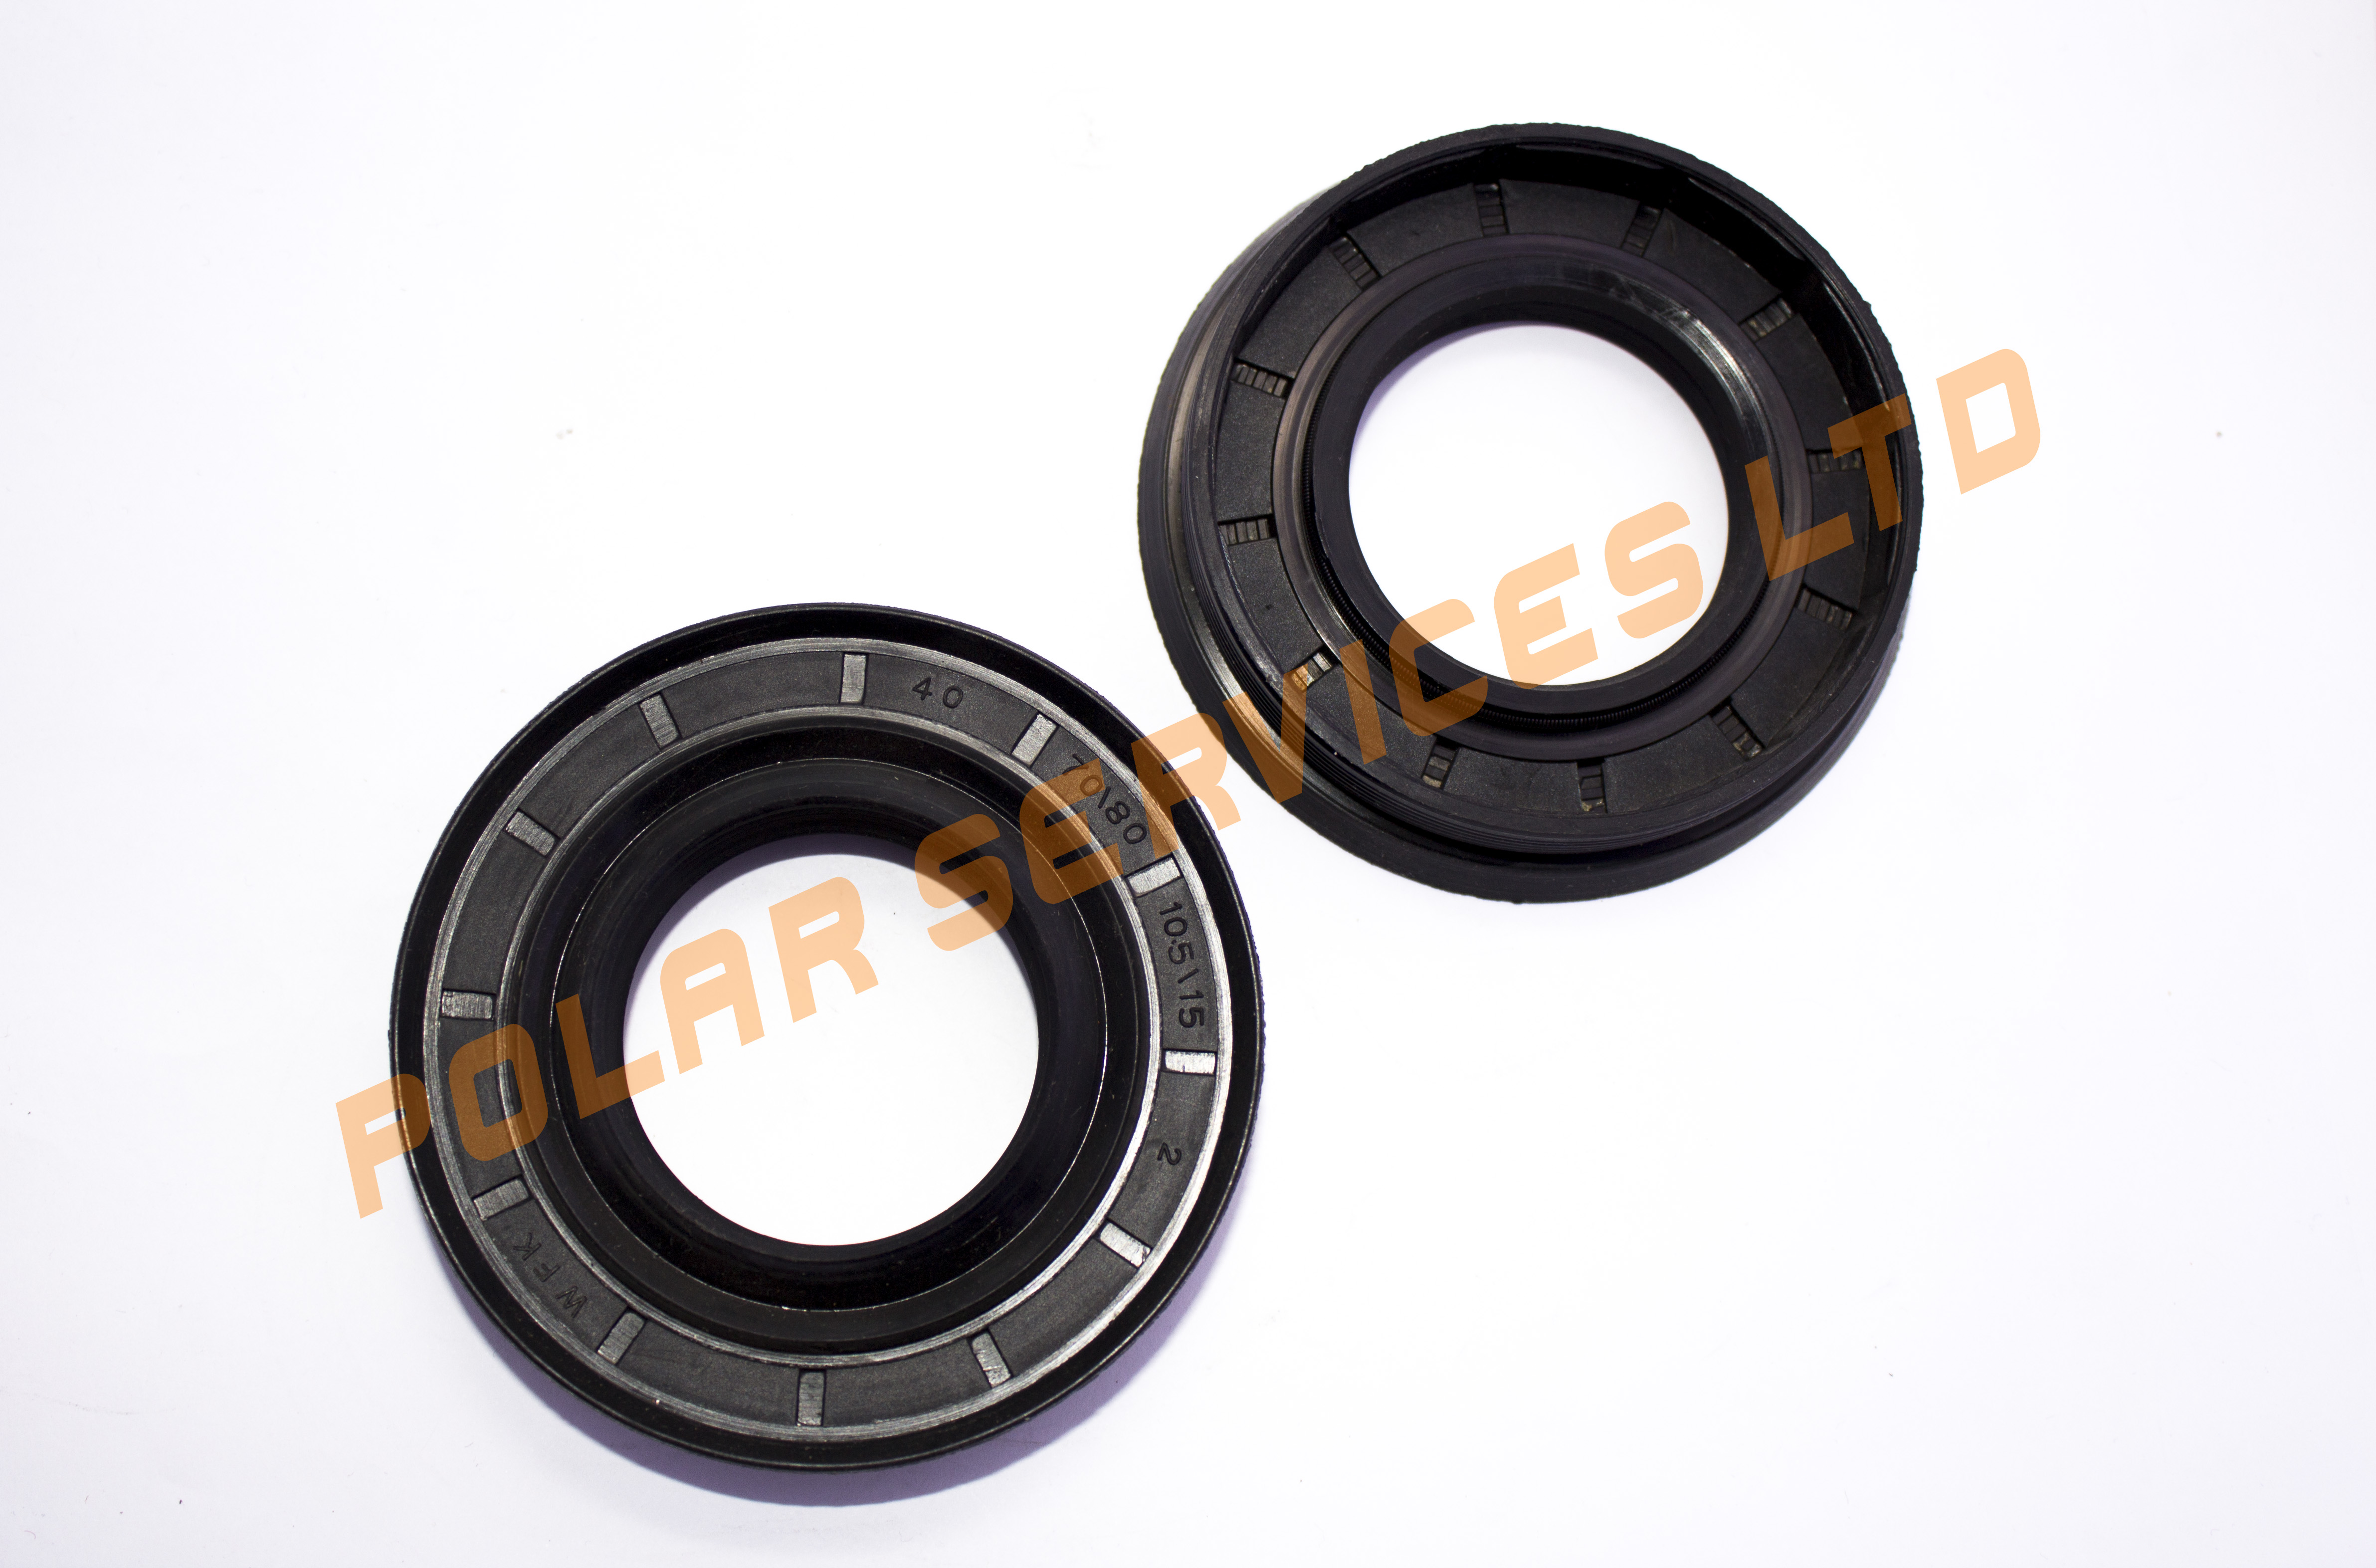 WASHING MACHINE BEARING SEAL 40X70/ 80X10/ 5/ 15 AEG Malta, 								Washing Machine Malta, Polar Services LTD Malta Malta